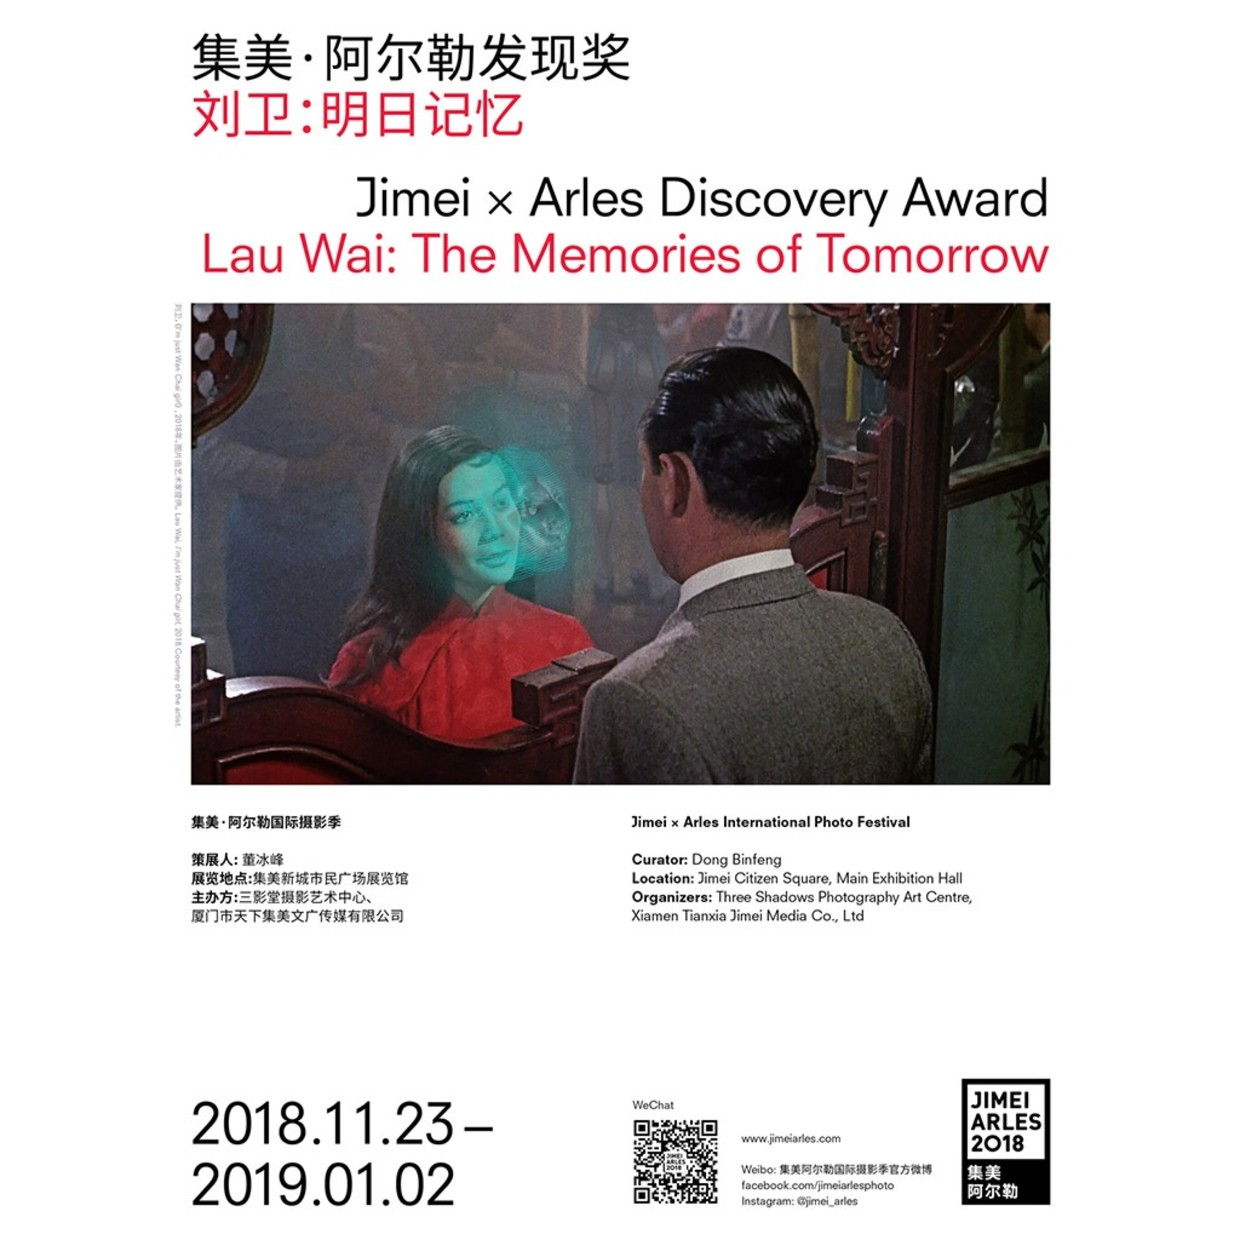 LAU WAI THE MEMORIES OF TOMORROW CURATED BY DONG BINGFENG With controversies flying around about what systems or concepts represent,...